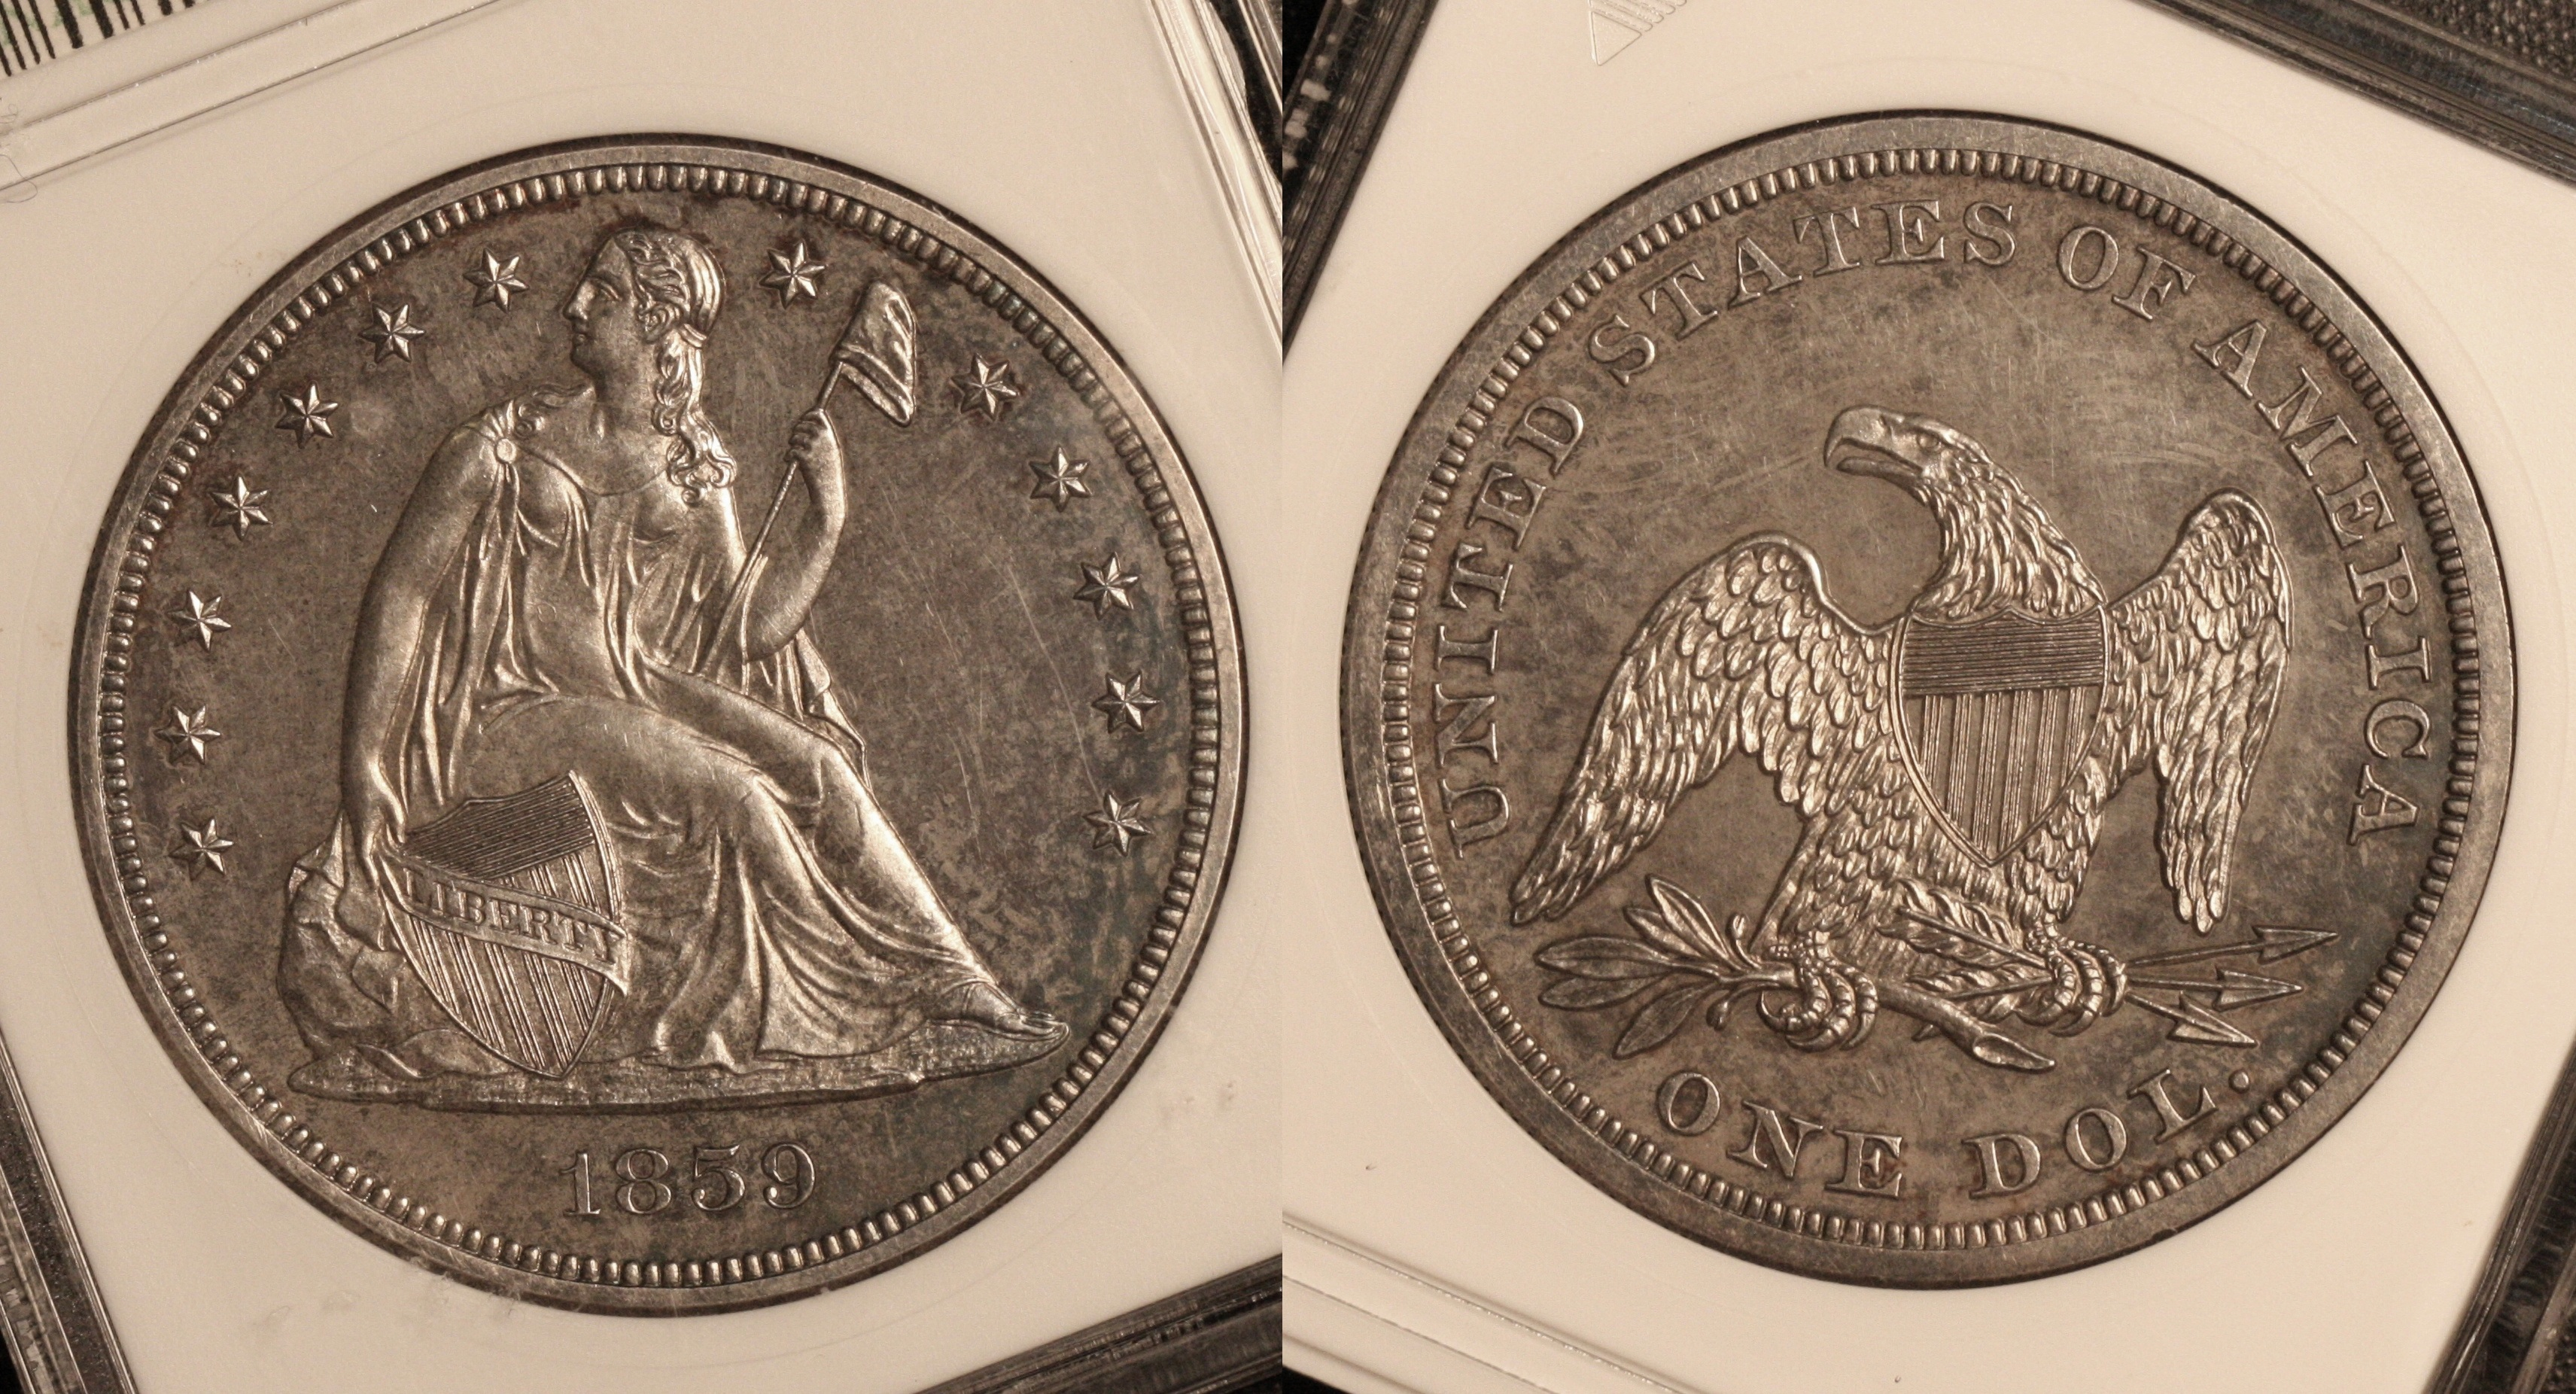 1859 Seated Liberty Silver Dollar ANACS Proof-64 camera